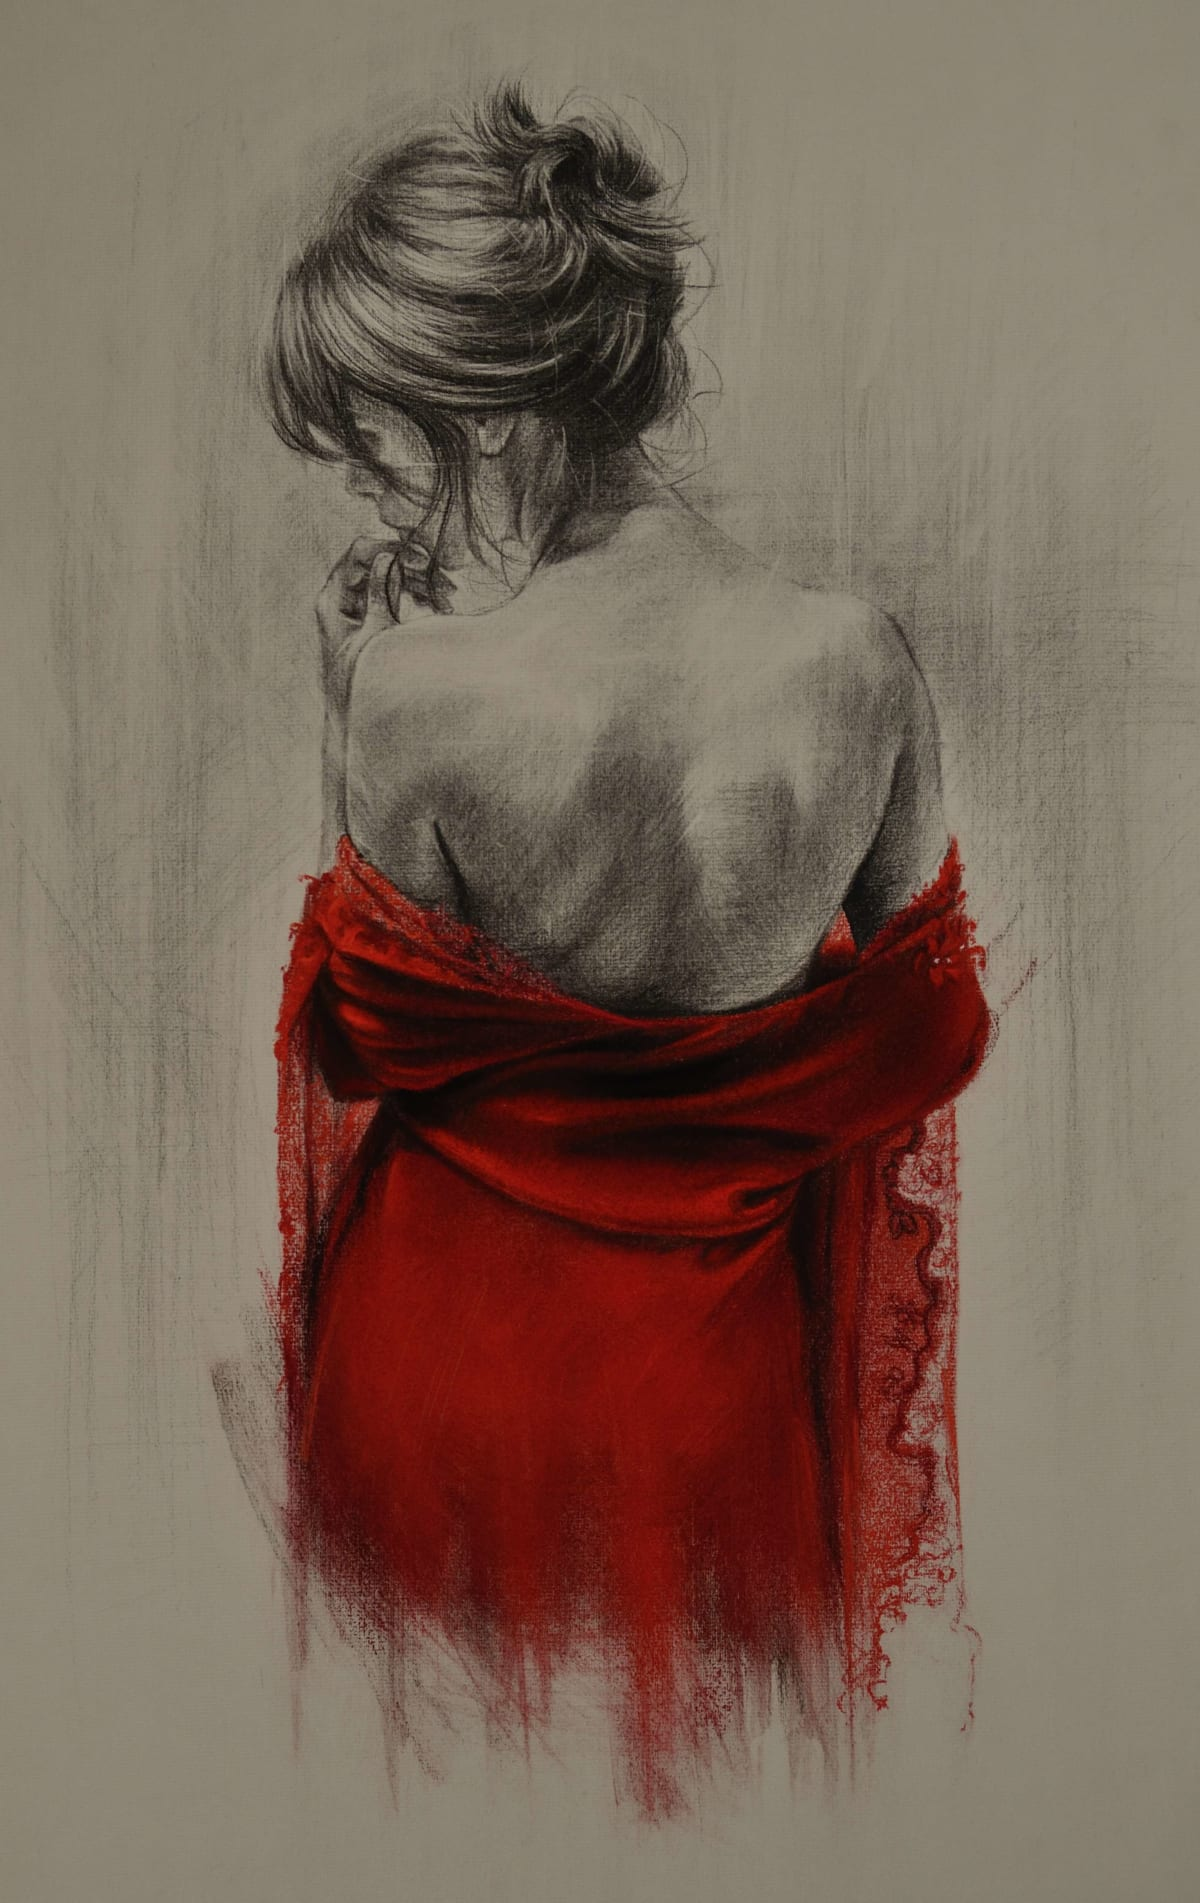 Trudy Good RED XXXVIII Pastel and charcoal on grey paper 20 x 27 in. 50.8 x 68.58 cm